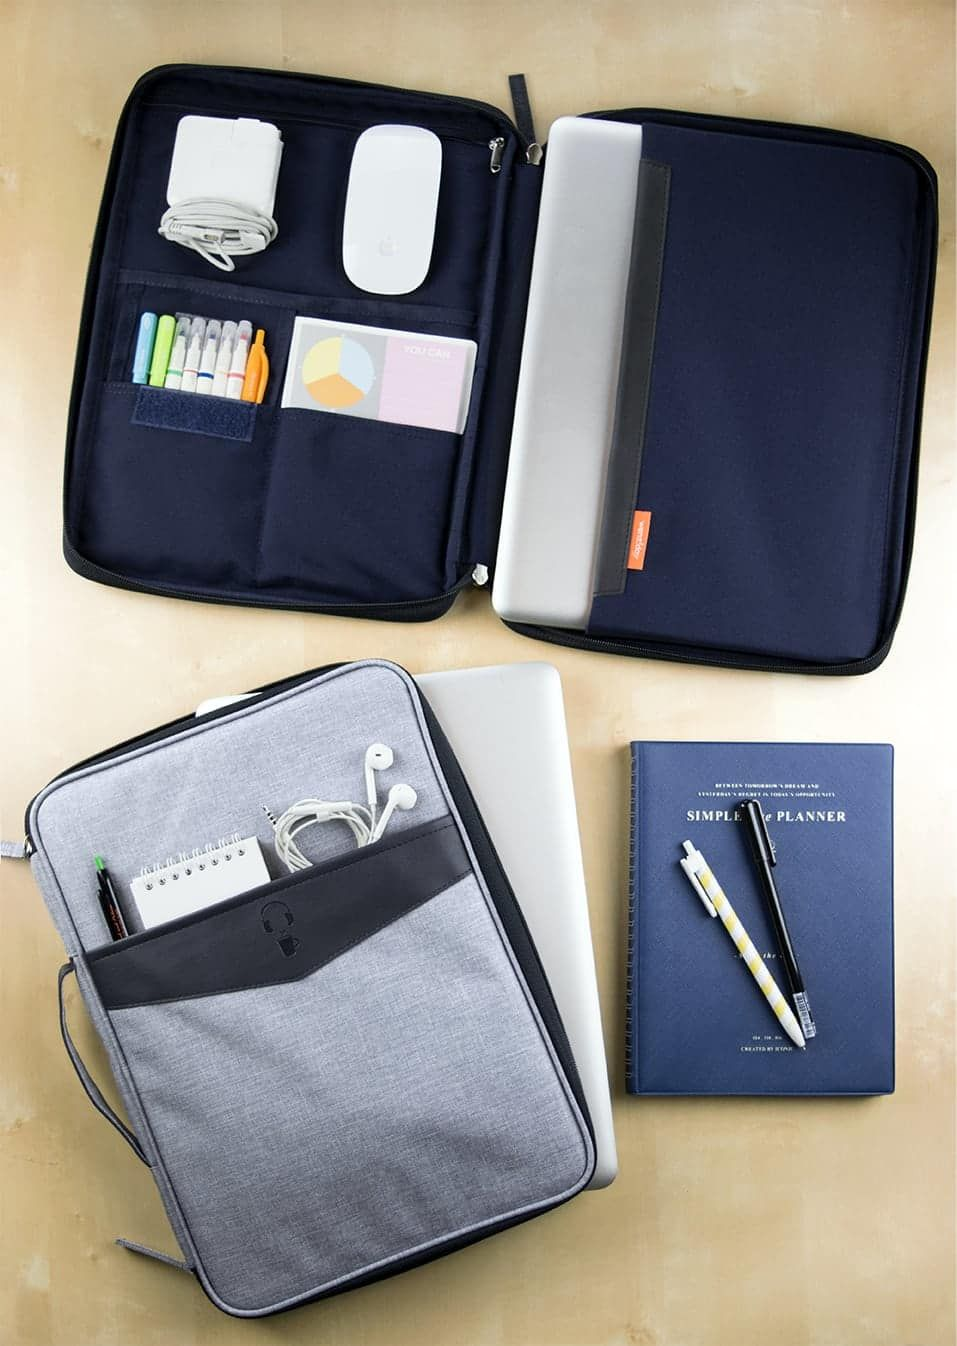 better together 13 in laptop pouch v2 laptop bag in 2018